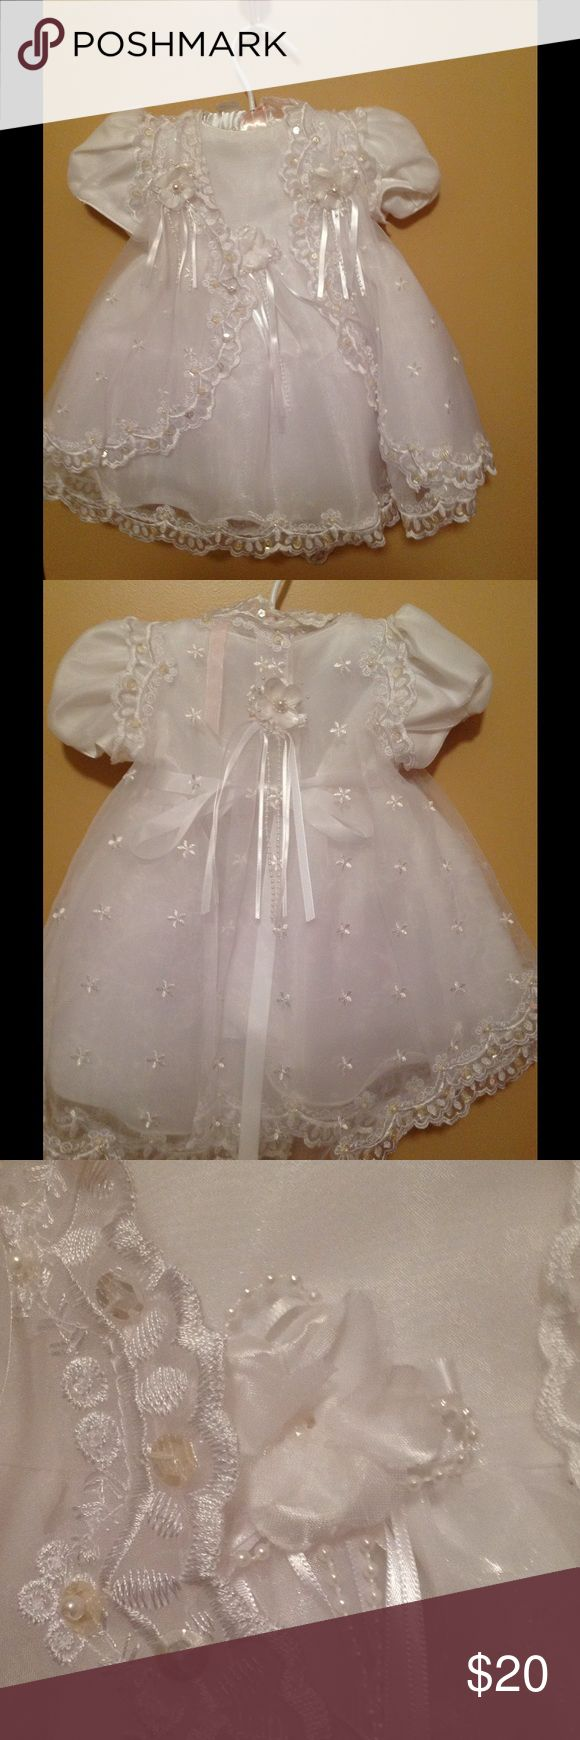 Communion/Formal dress Used for two hours and still beautiful with pearl accents and gorgeous lace detailing. It is missing a tiny pearl accent in middle of a flower but that can be easily replaced. It comes with a cute satin bonnet. The dress has a little tulle material for added volume. Dresses Formal